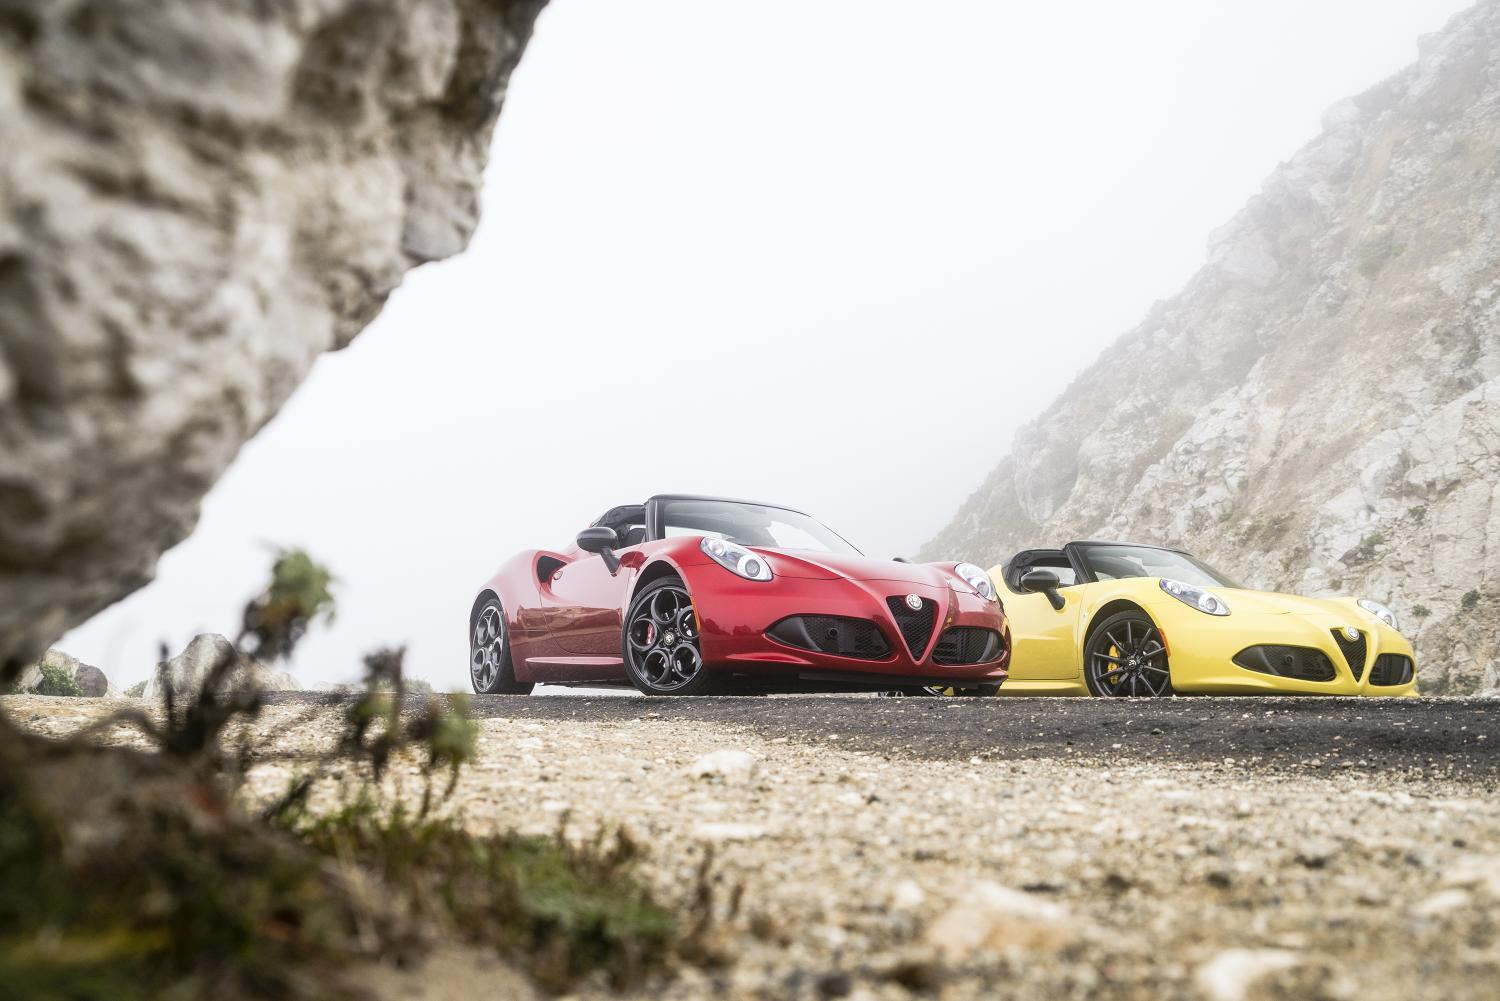 2015 Alfa Romeo 4C Spider Priced from $63,900 in the US